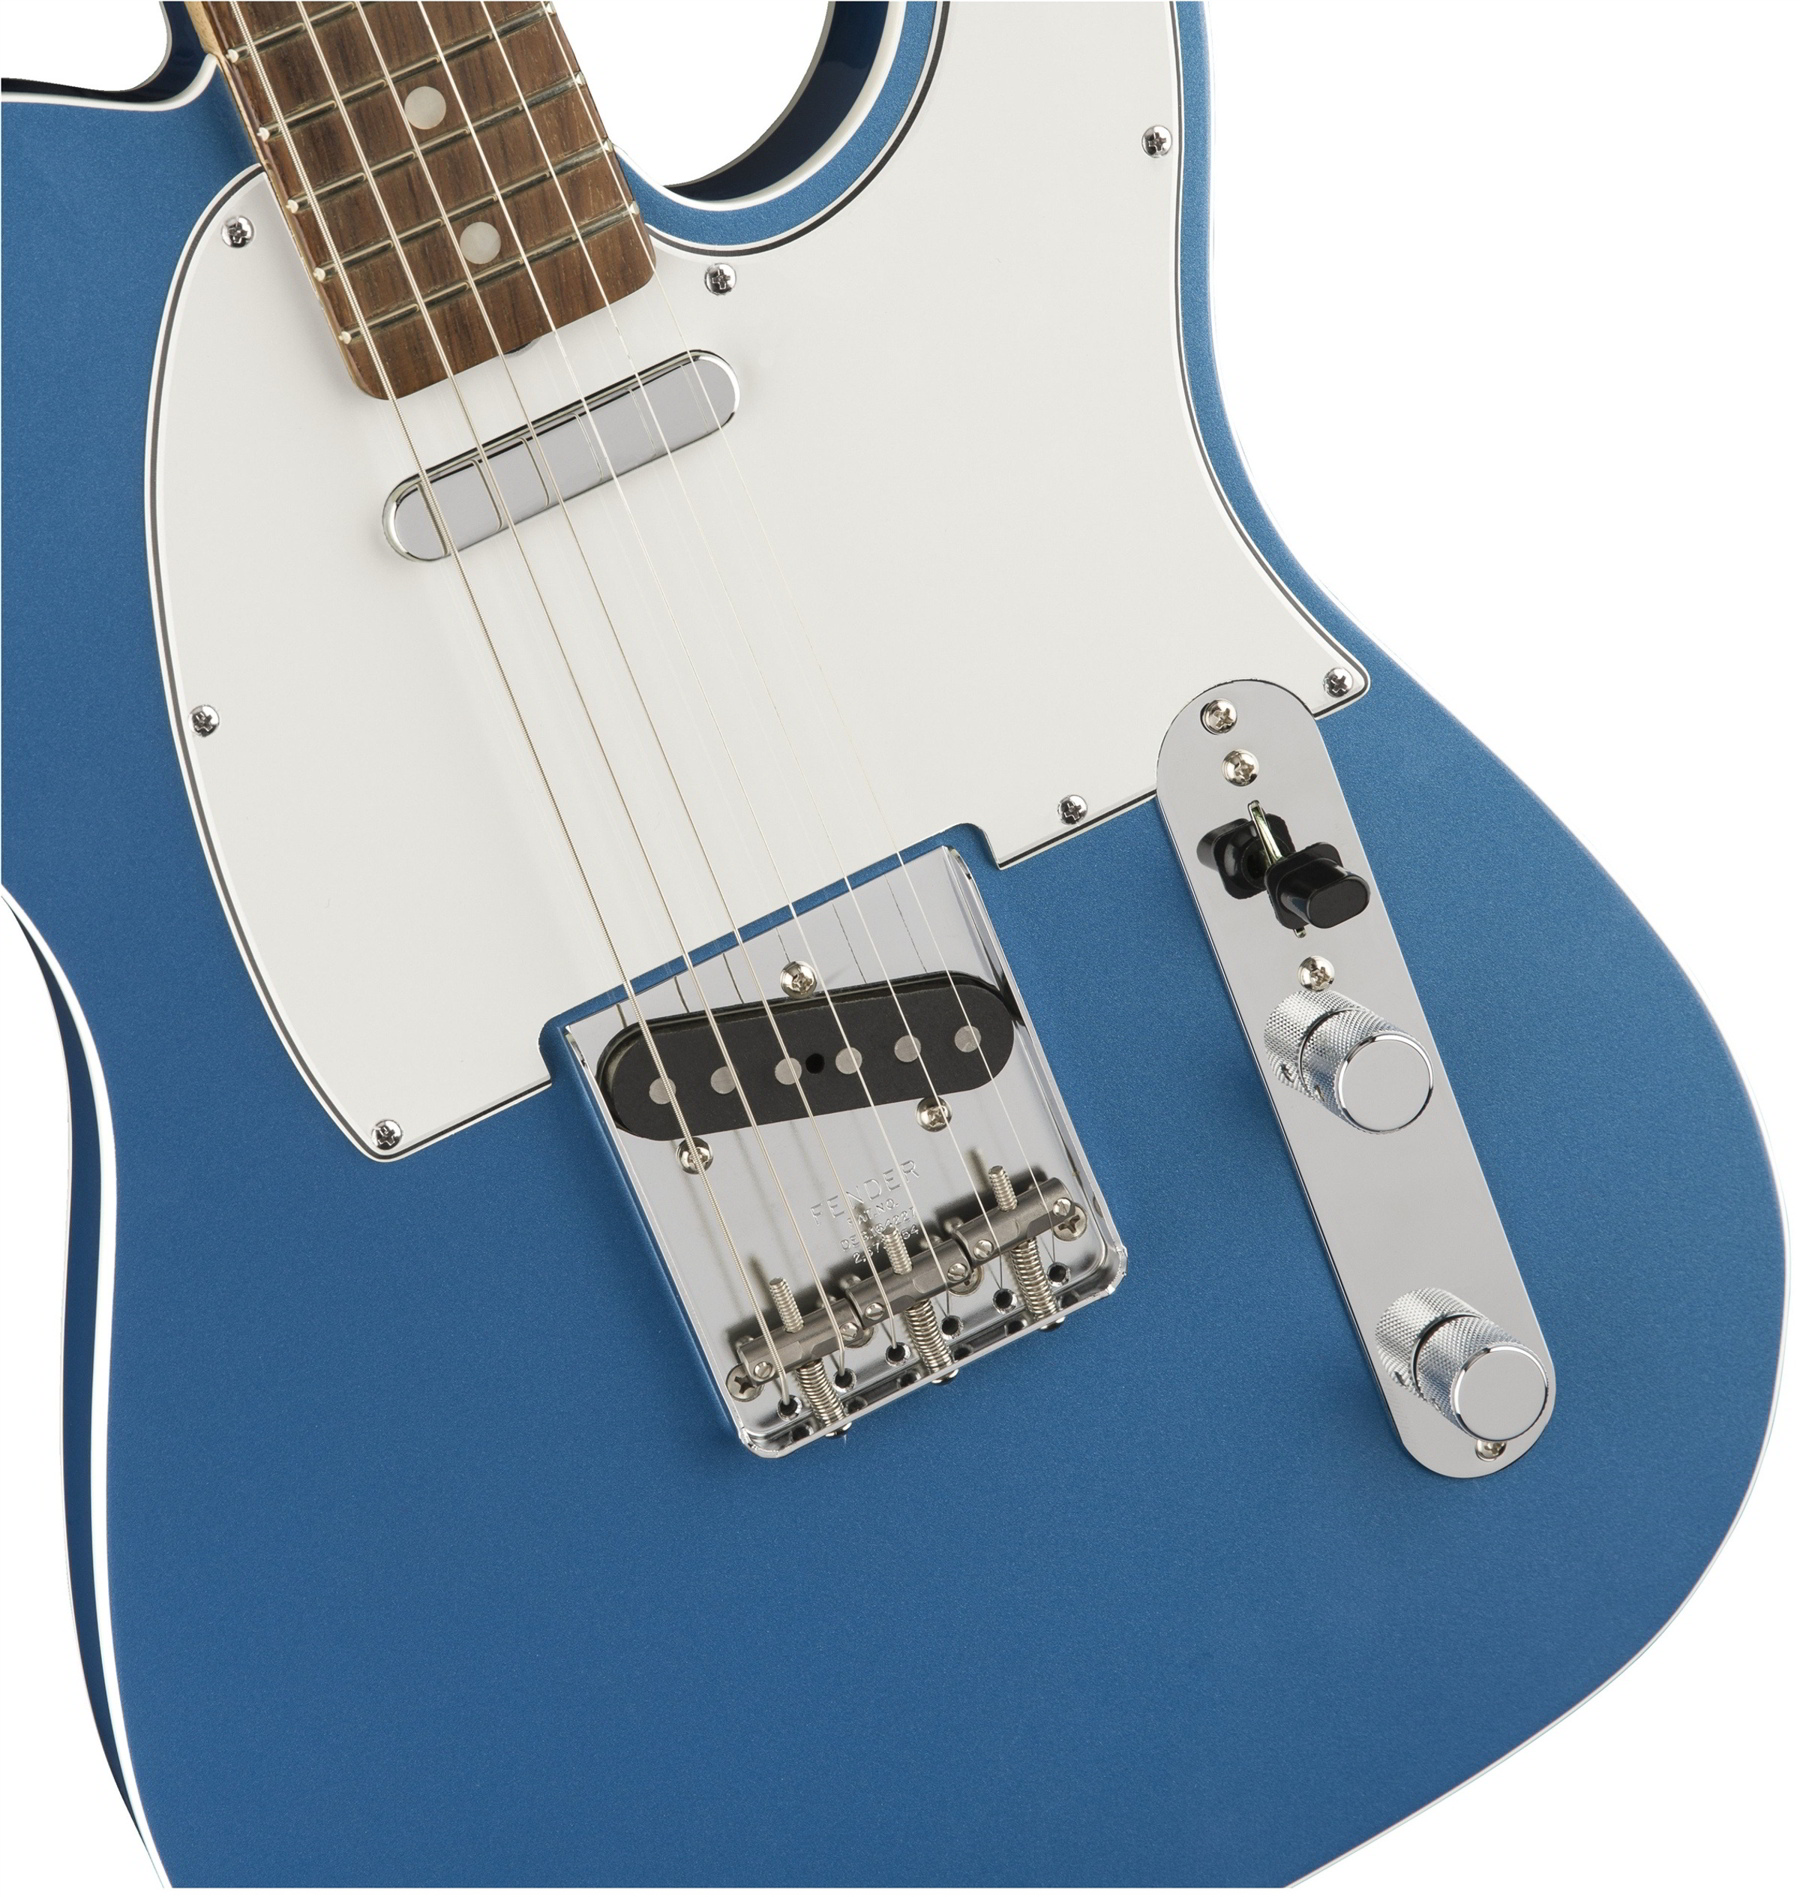 American Original '60s Telecaster Lake Placid Blue追加画像